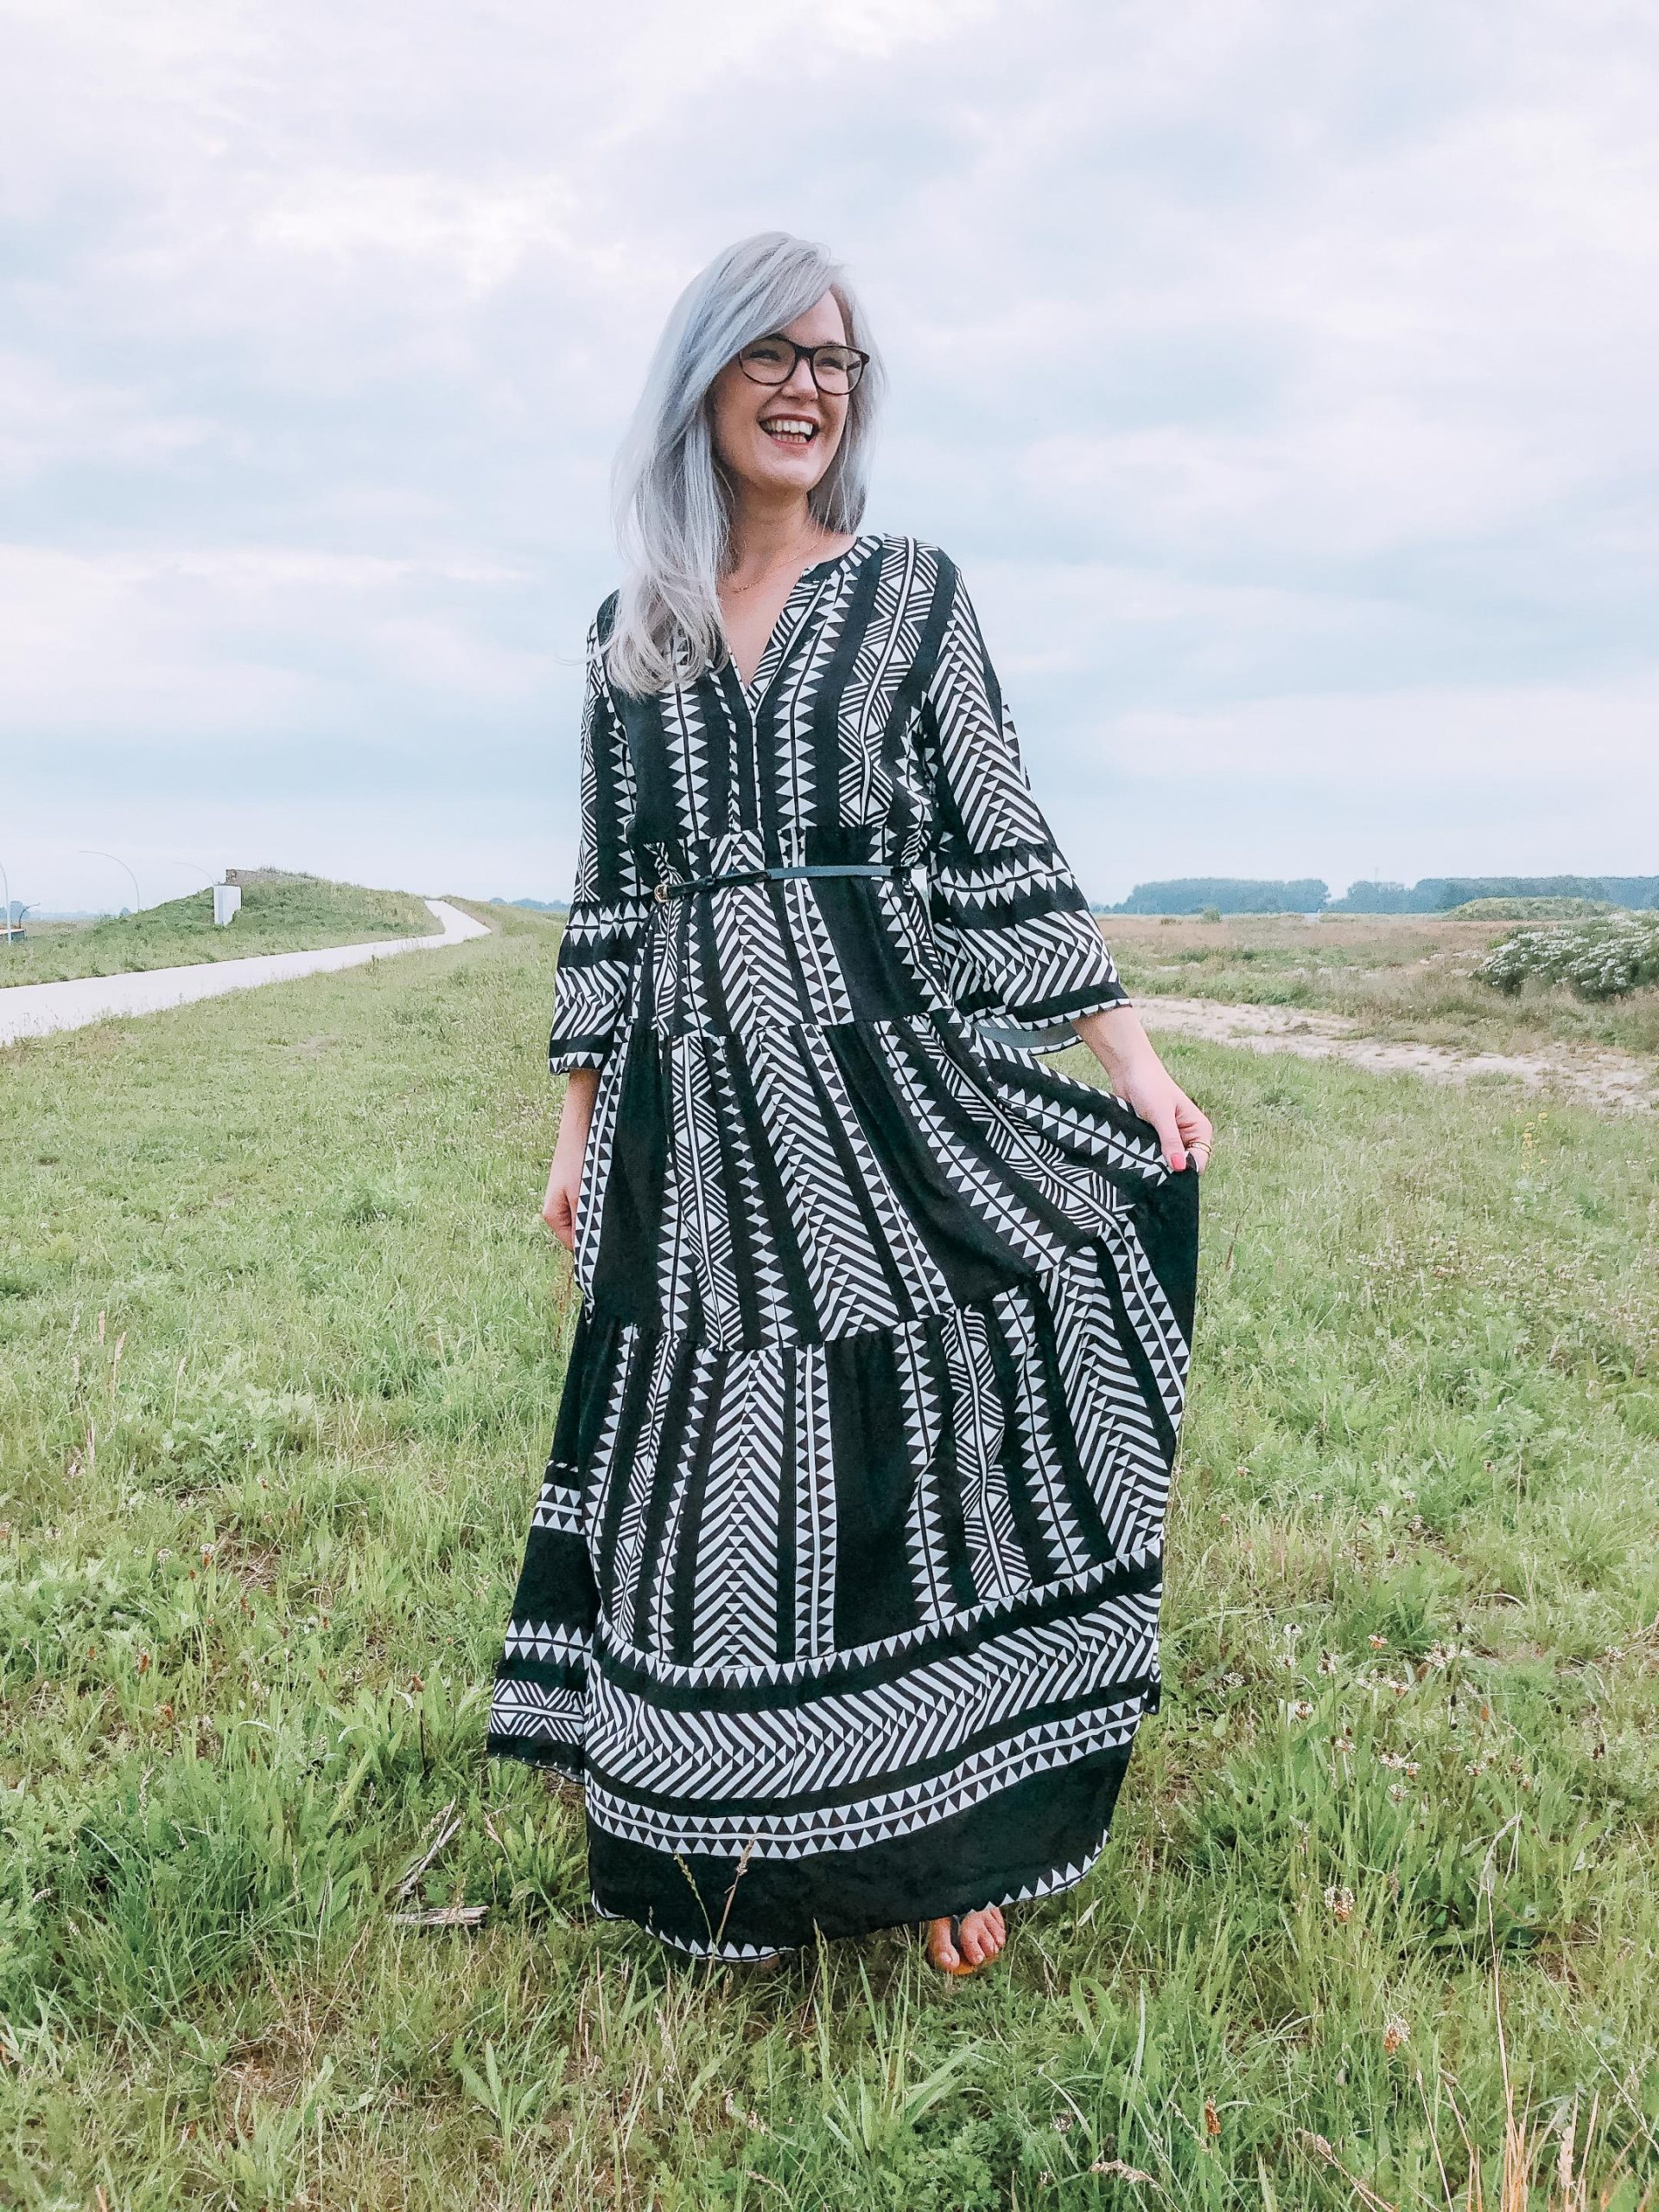 IMG 9219 2160x2880 1 scaled - 3x Zomerse Bohemien Outfits (Shoplog)!